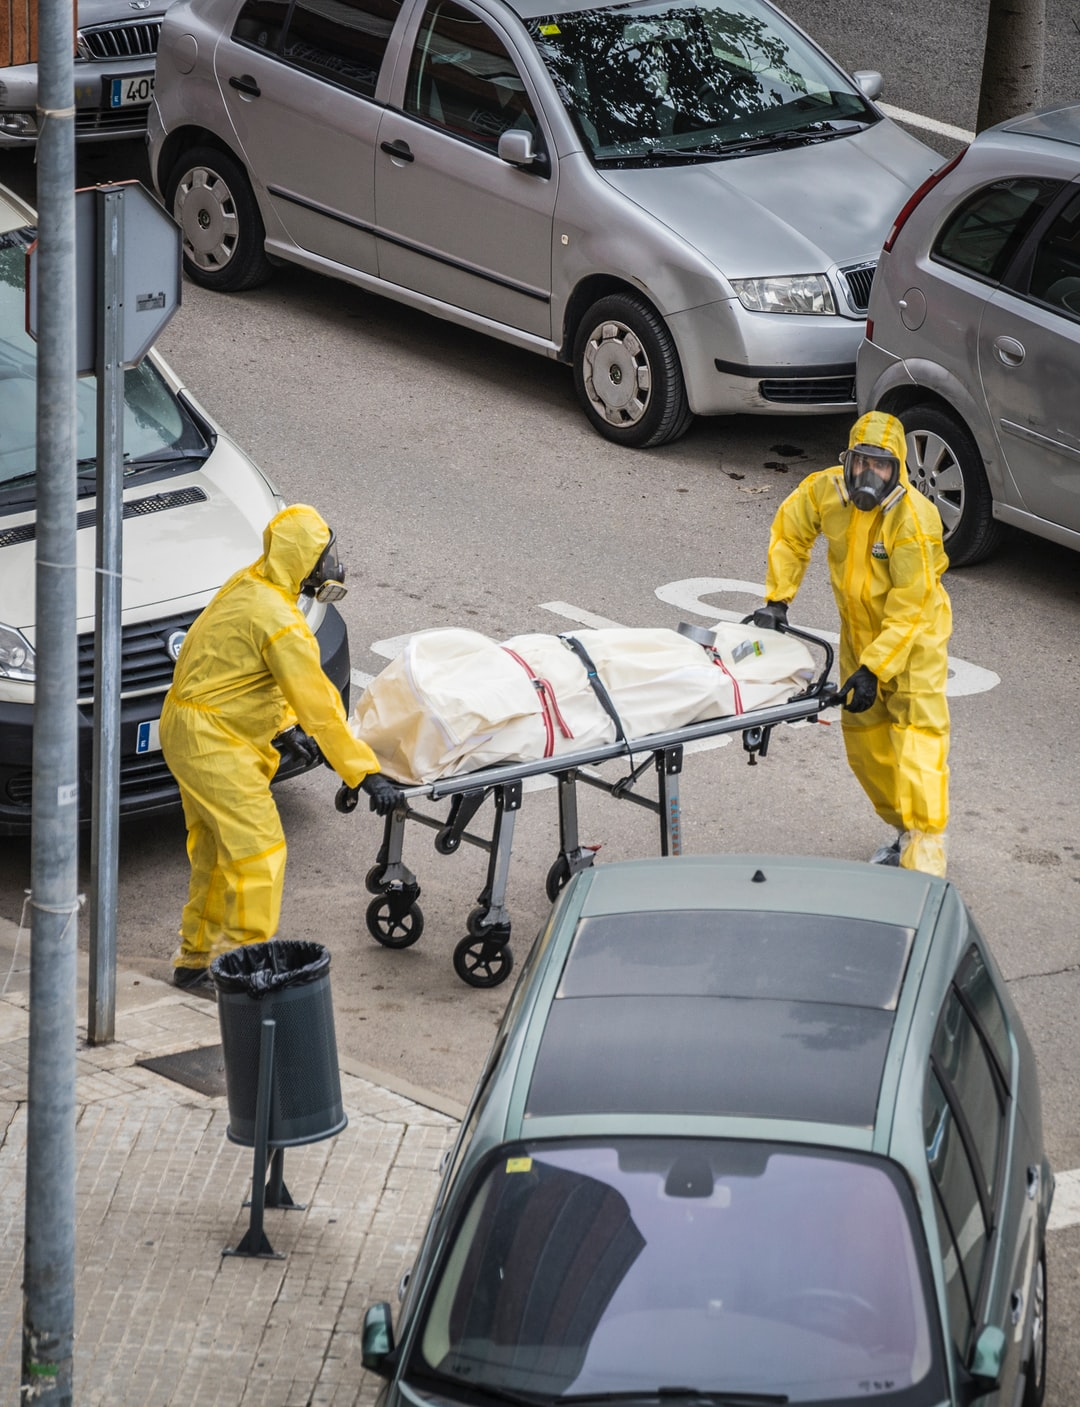 COVID-19 causes an increase in shipments of body bags